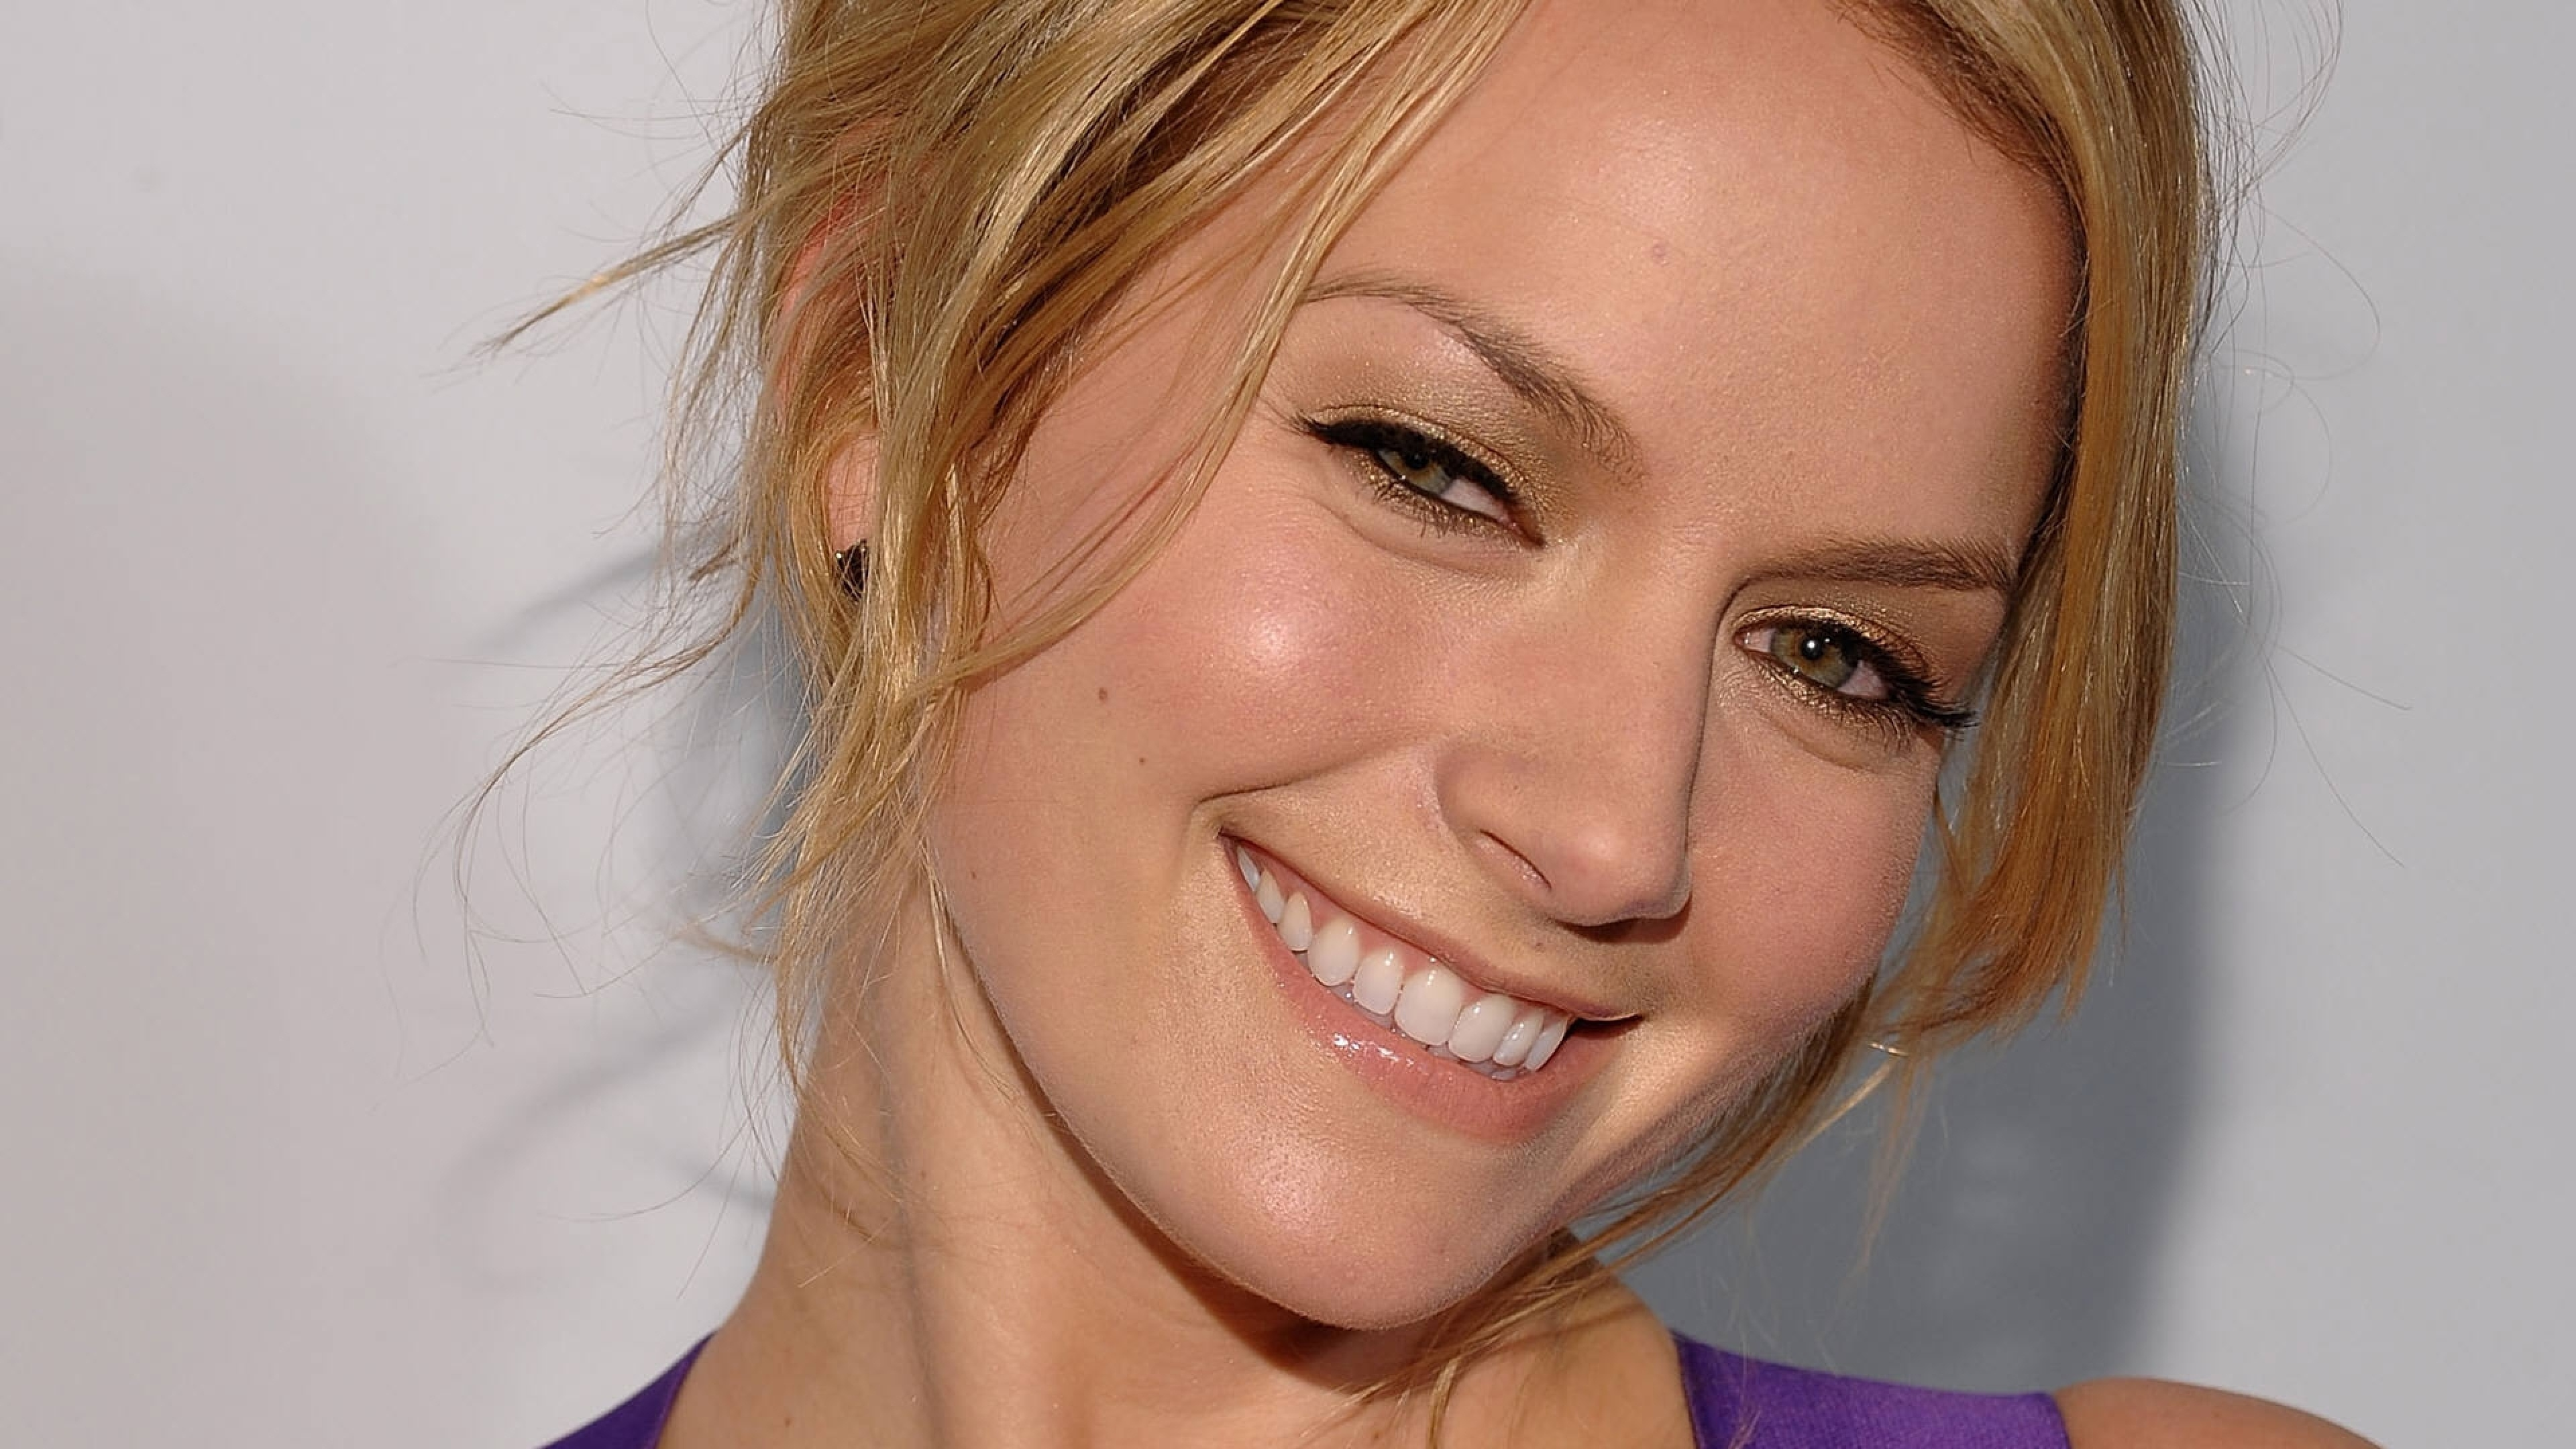 becki newton 4k wallpaper background